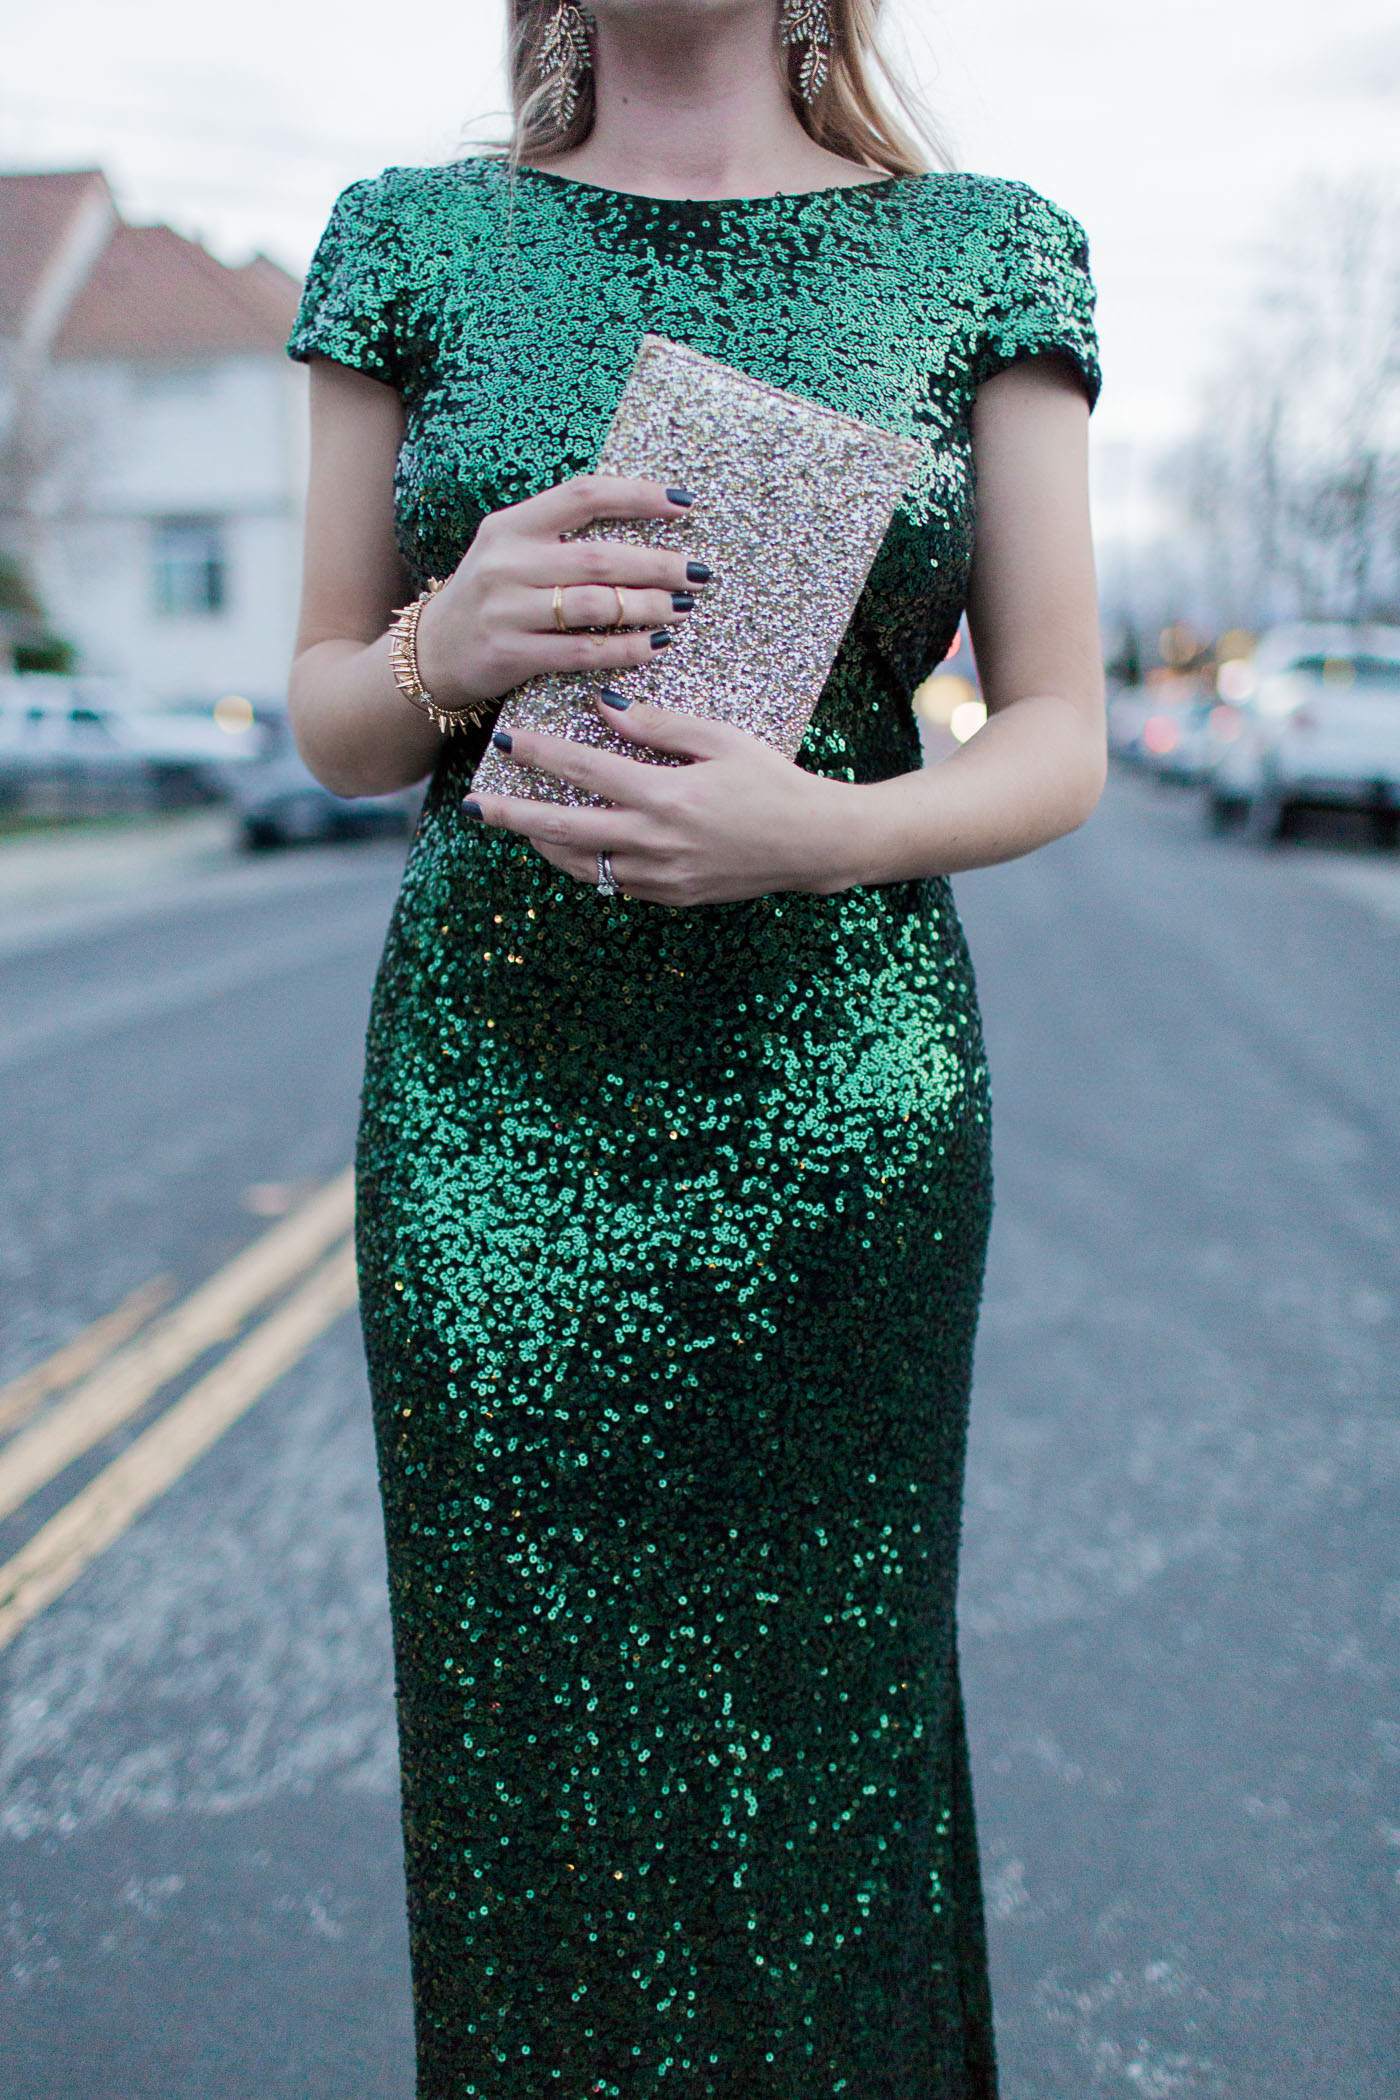 New Years Eve Dresses - Hej Doll | Simple modern living by ...